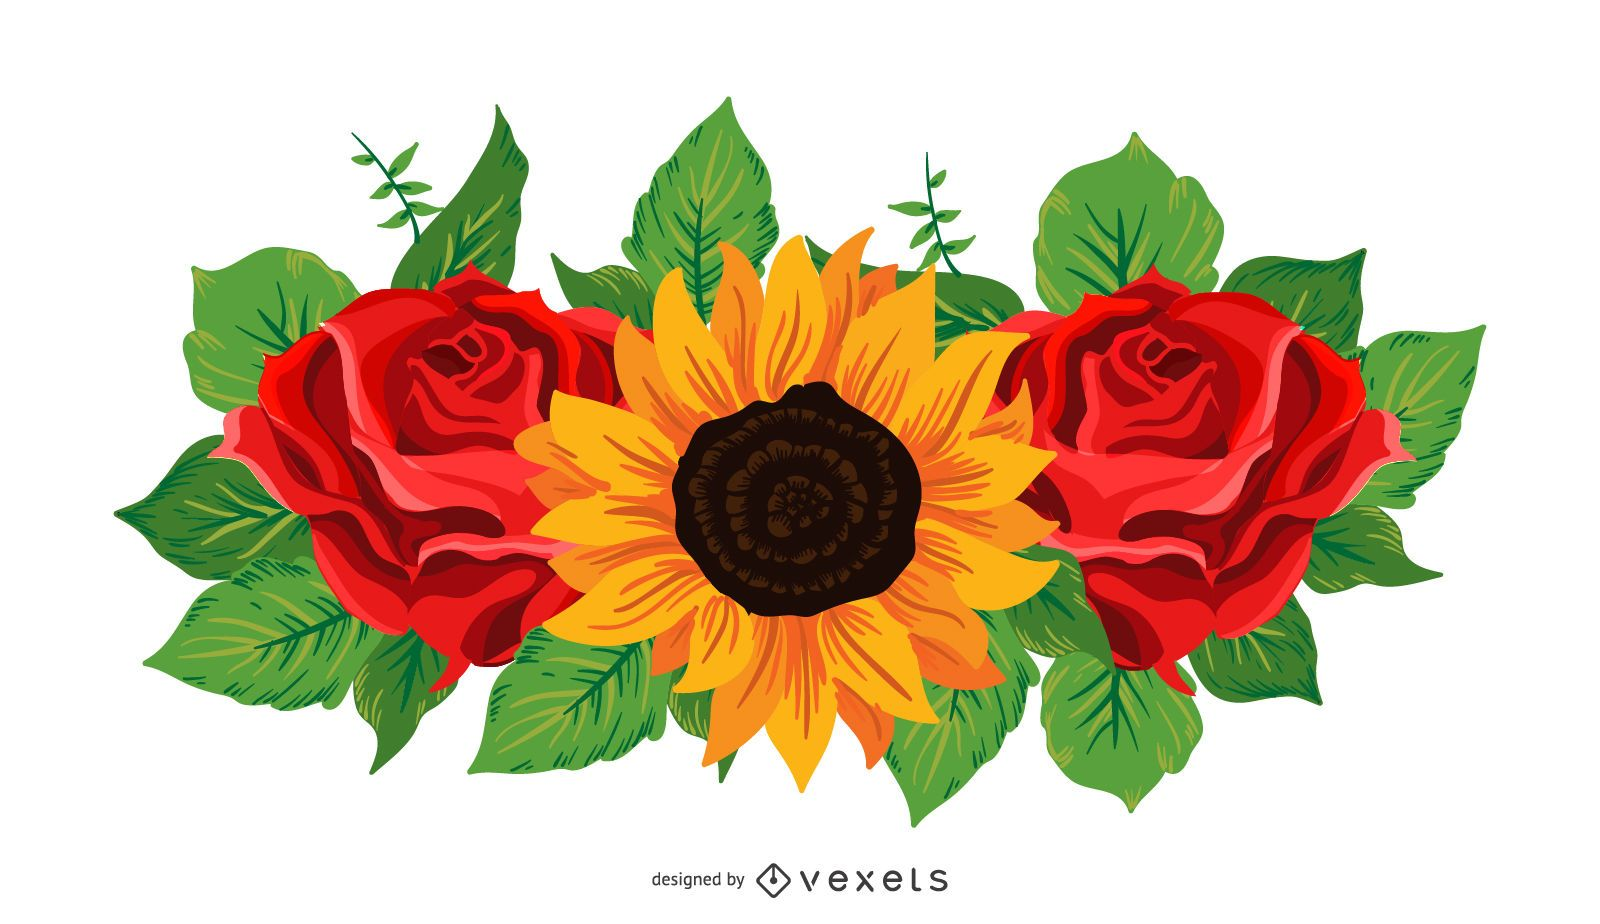 Sunflower And Roses Illustration - Vector Download